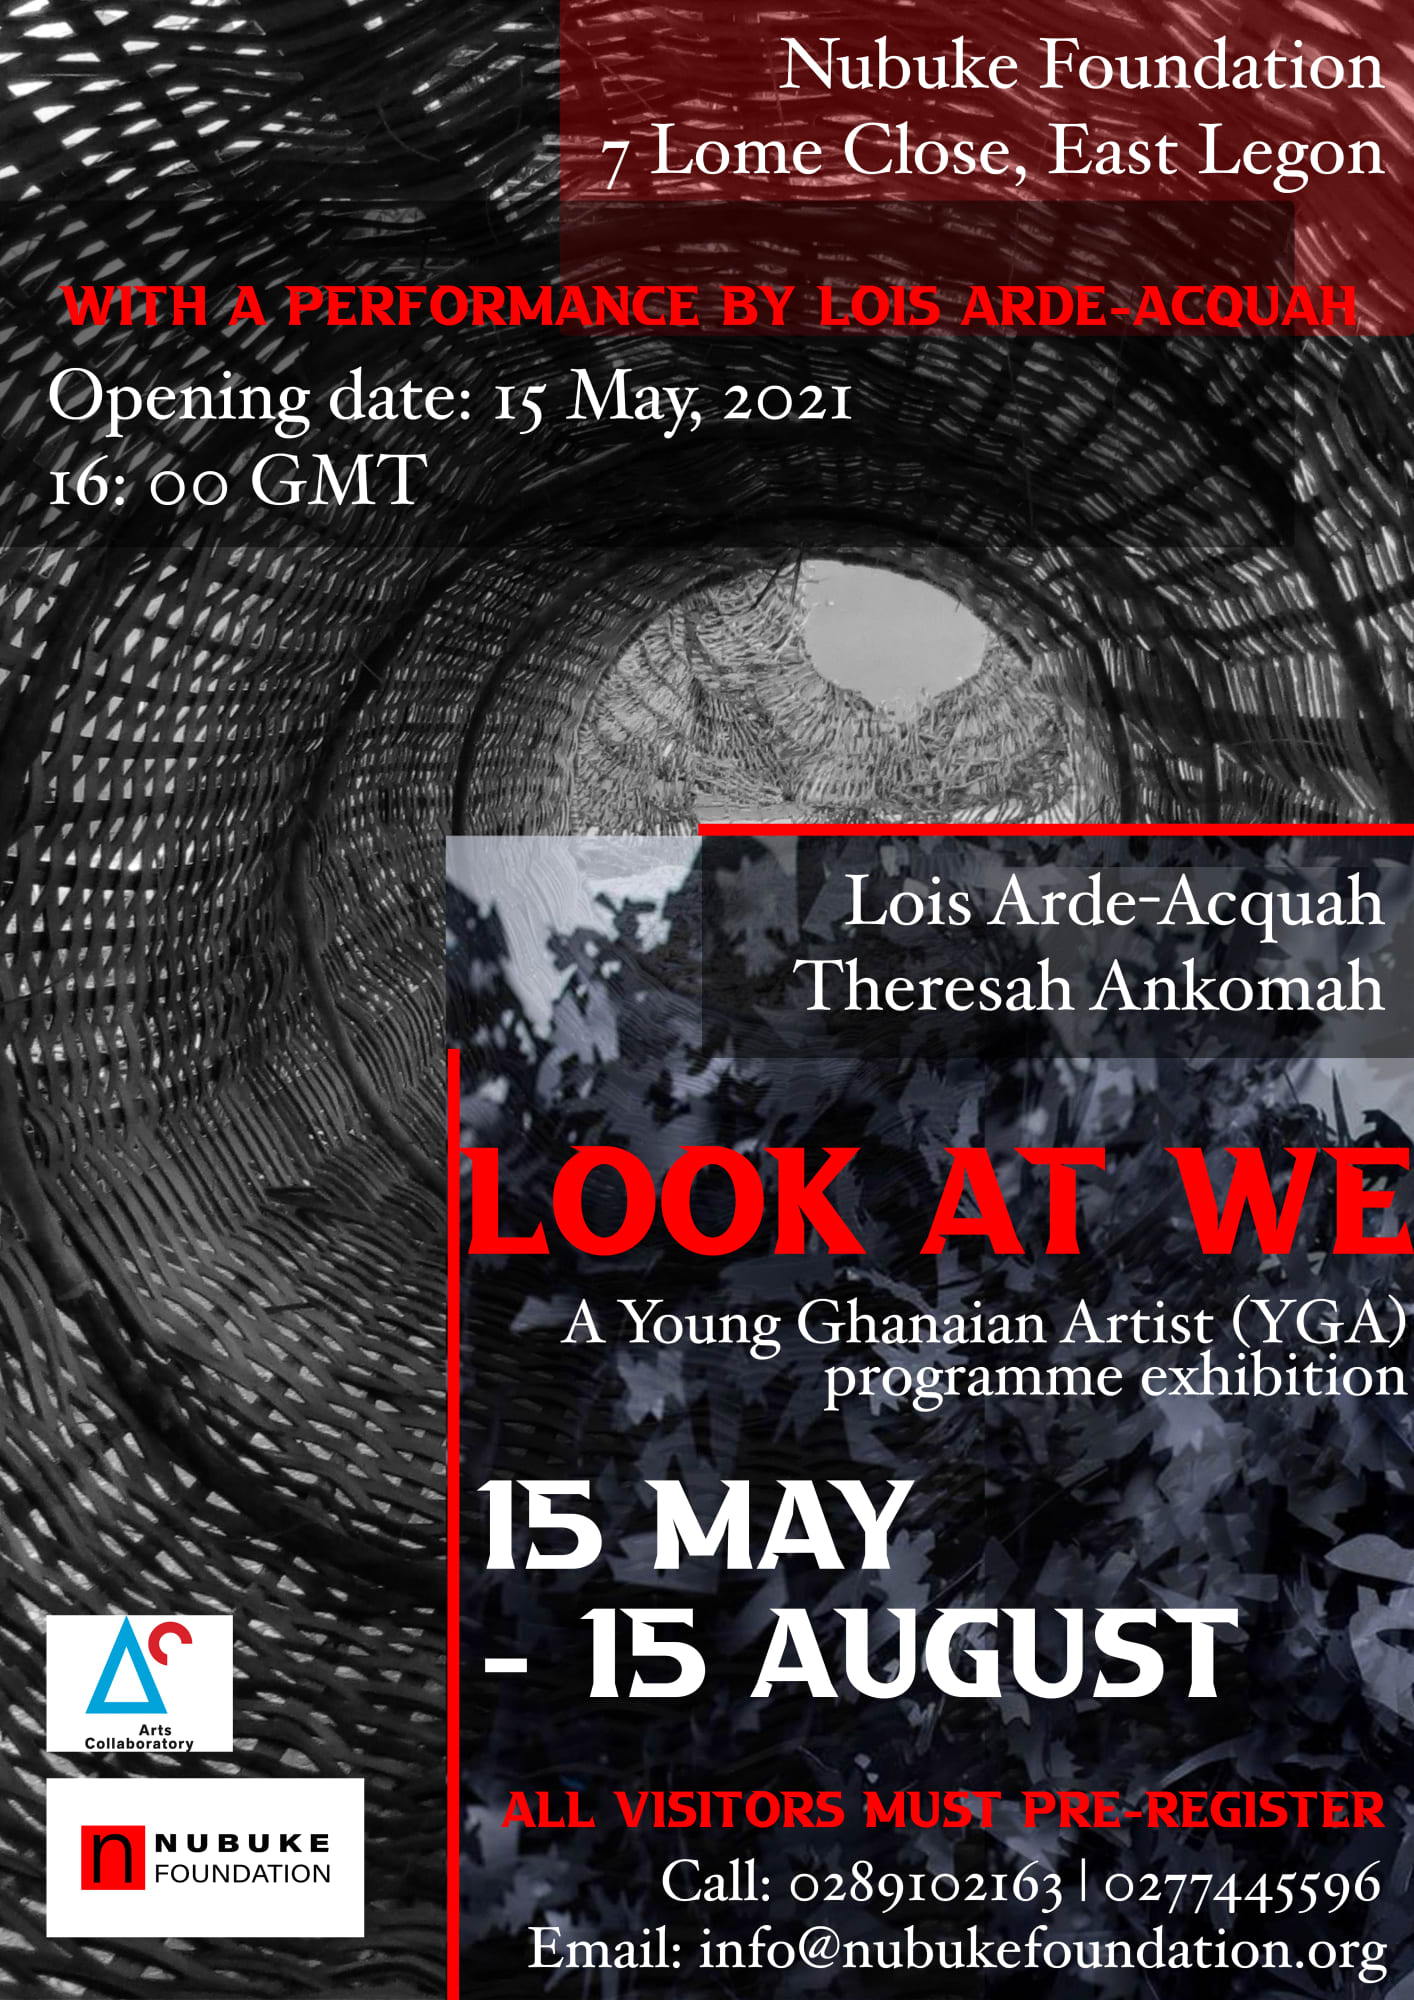 UPCOMING EXHIBITION: LOOK AT WE